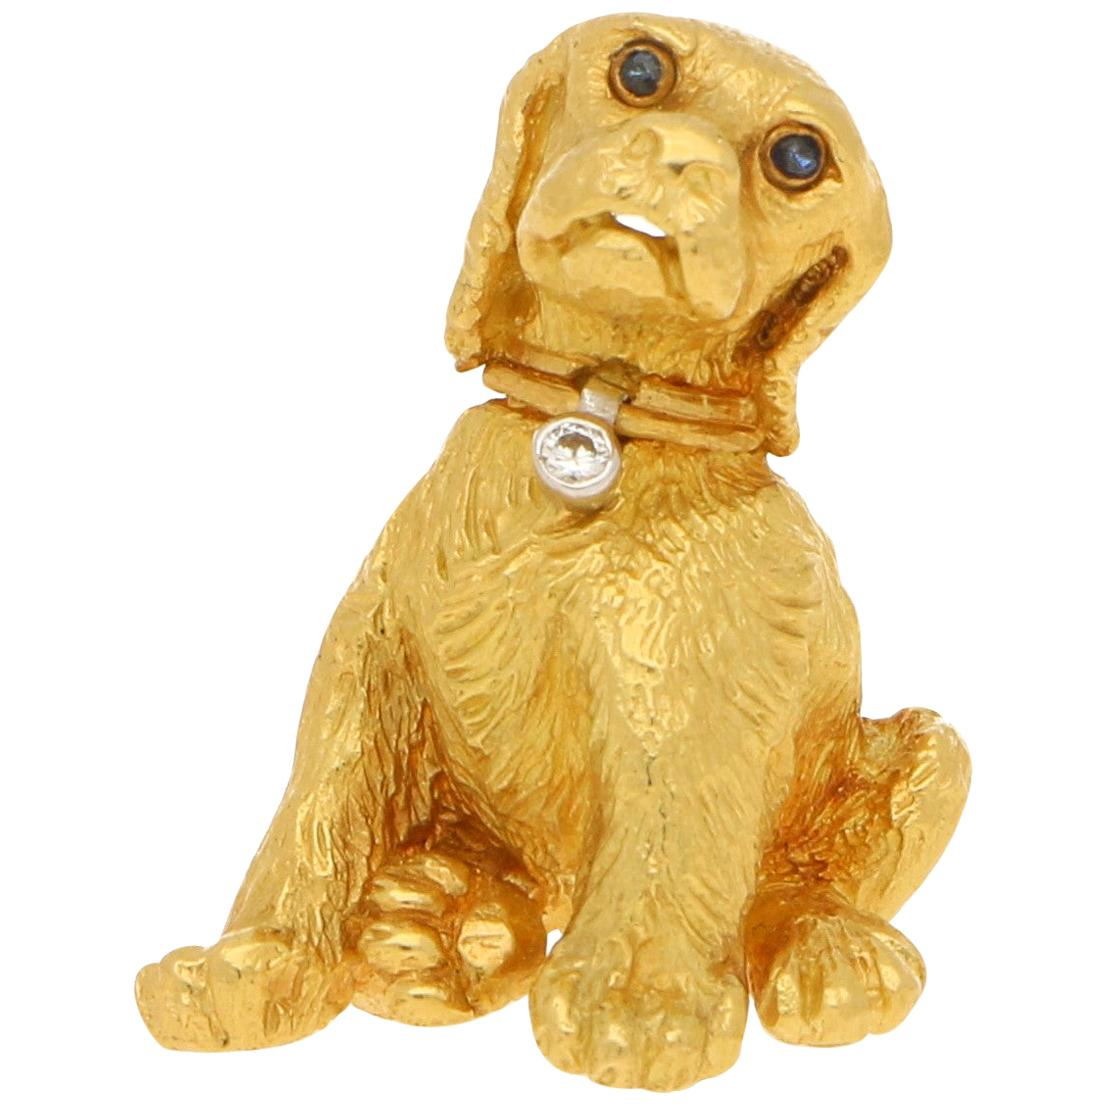 Tiffany & Co. Diamond and Sapphire Puppy Brooch Set in 18k Yellow Gold